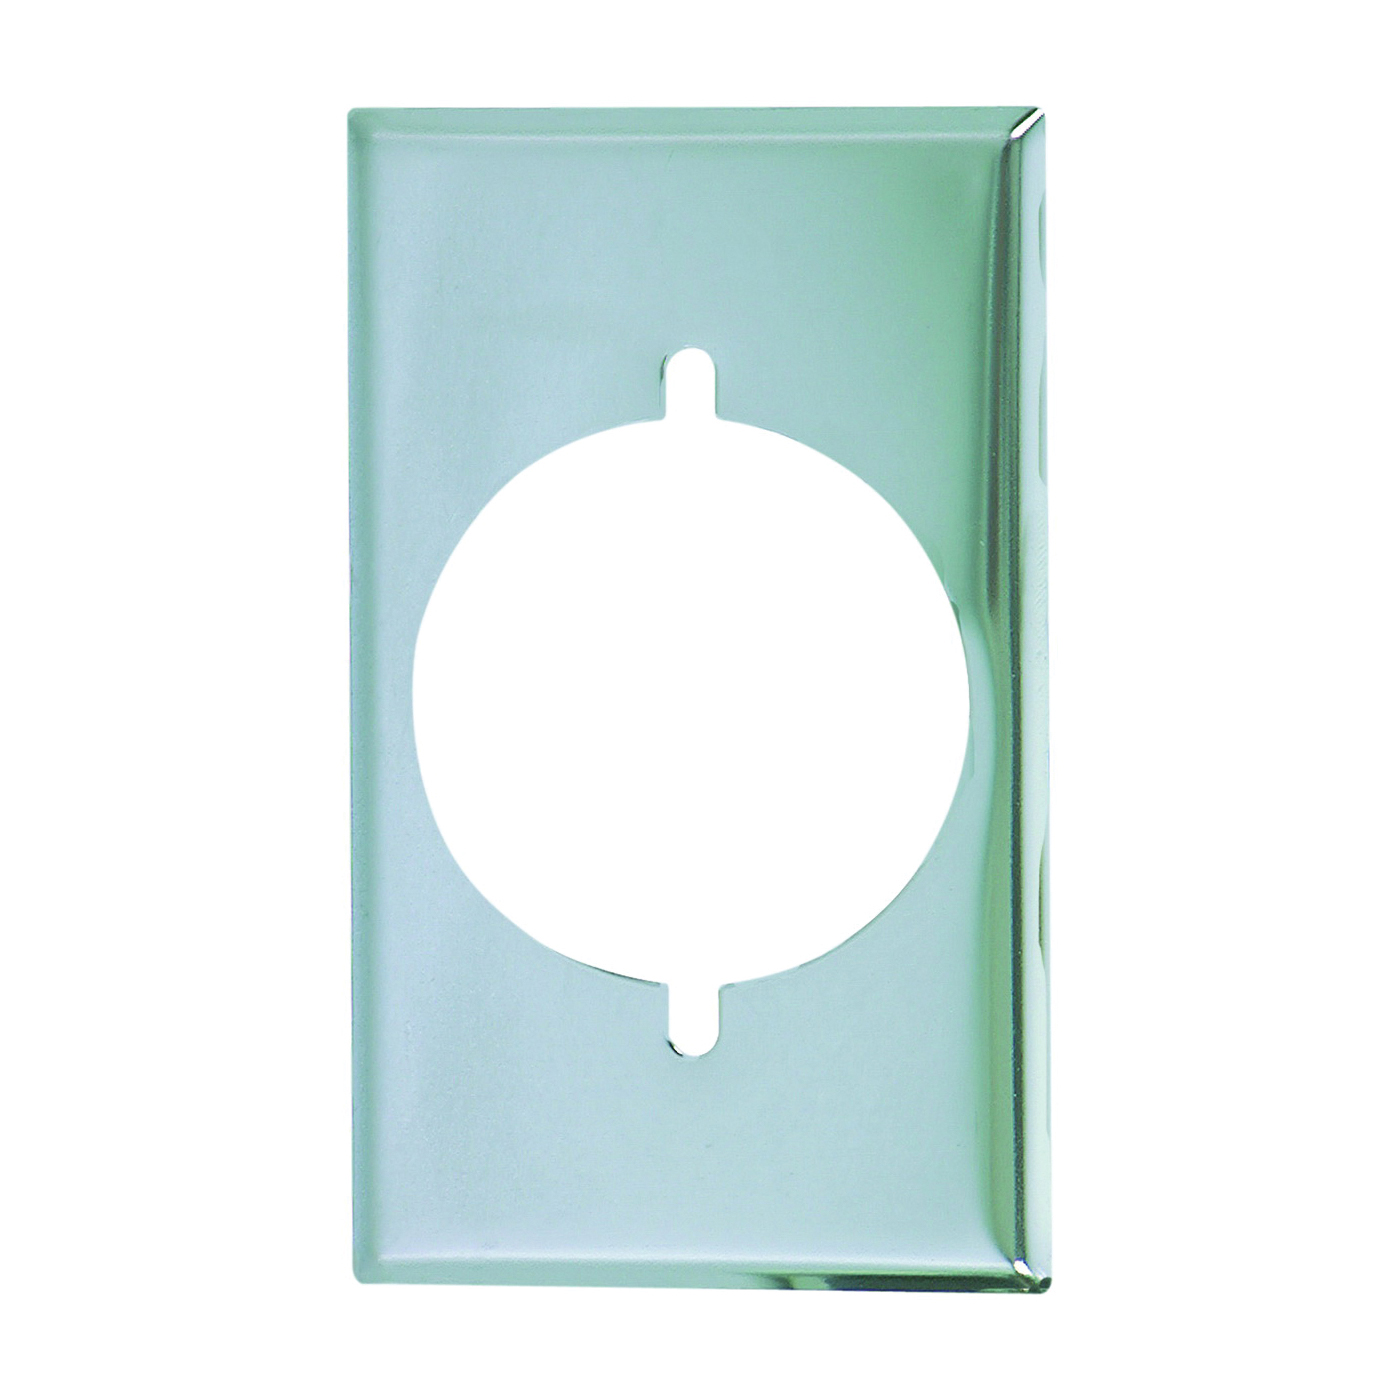 Picture of Eaton Wiring Devices 39CH-BOX Power Outlet Wallplate, 4-1/2 in L, 2-3/4 in W, 1-Gang, Chrome, Ivory/White, Chrome